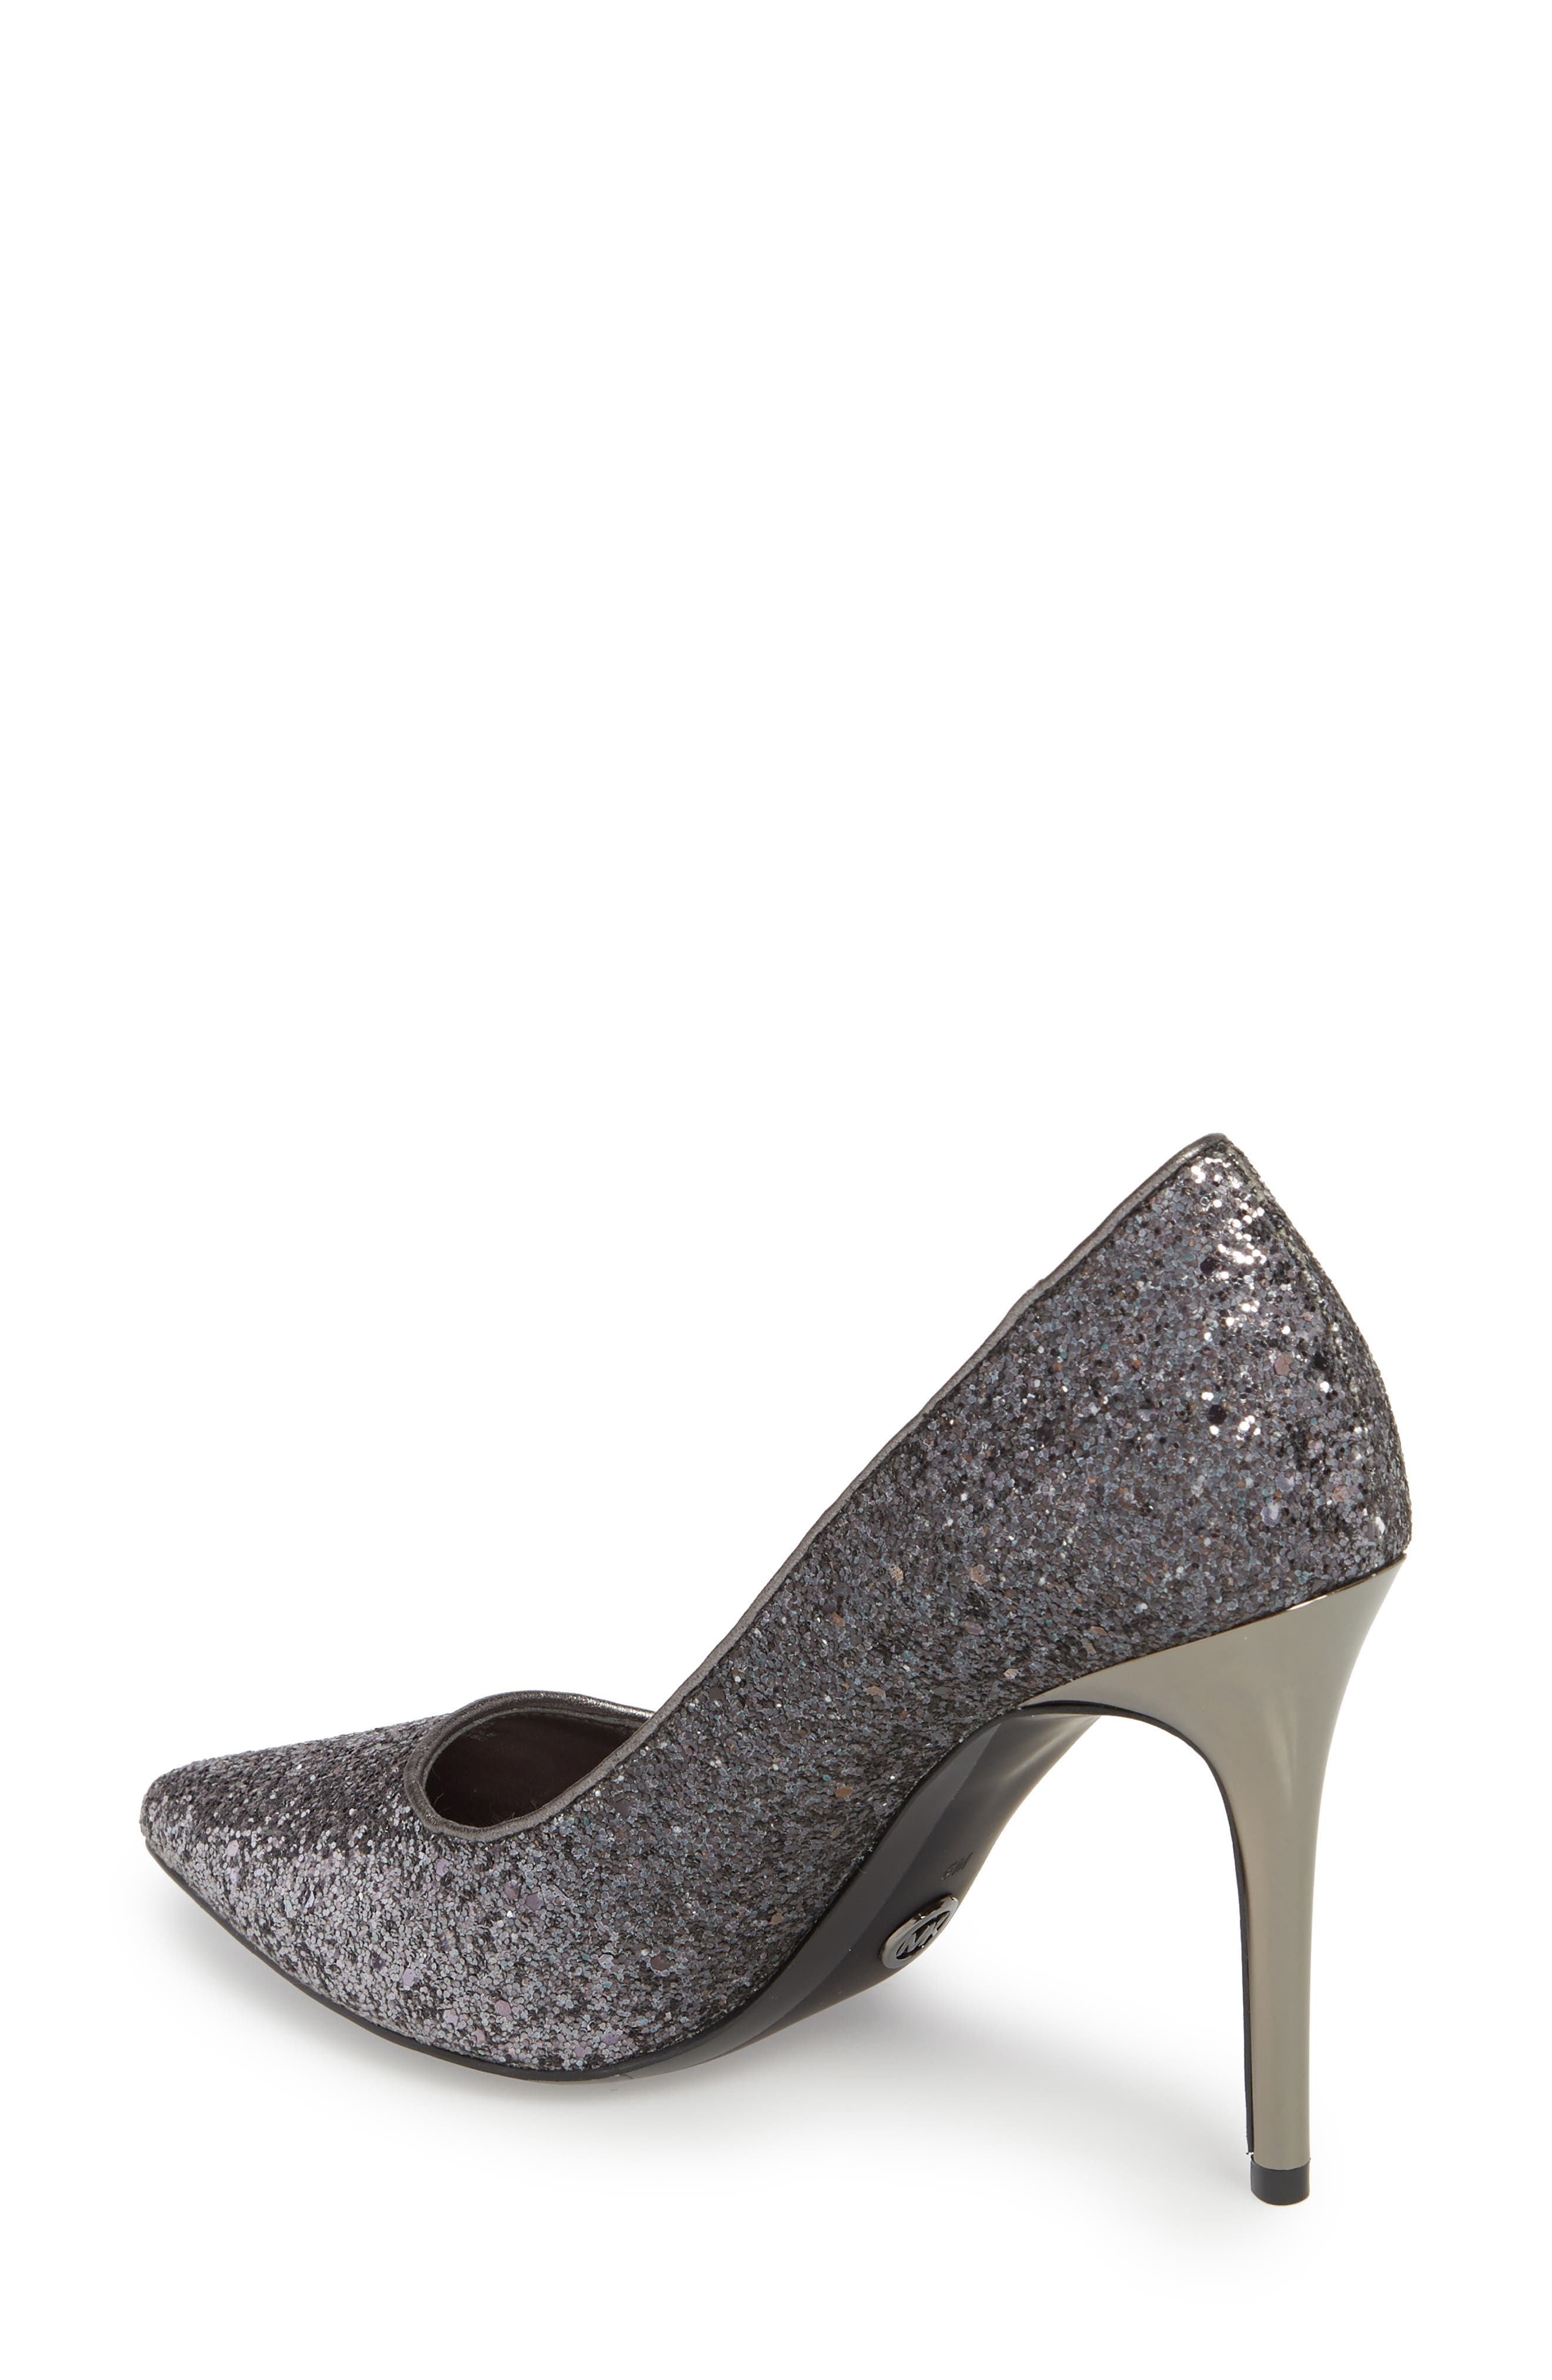 Claire Pointy Toe Pump,                             Alternate thumbnail 2, color,                             GUNMETAL GLITTER FABRIC